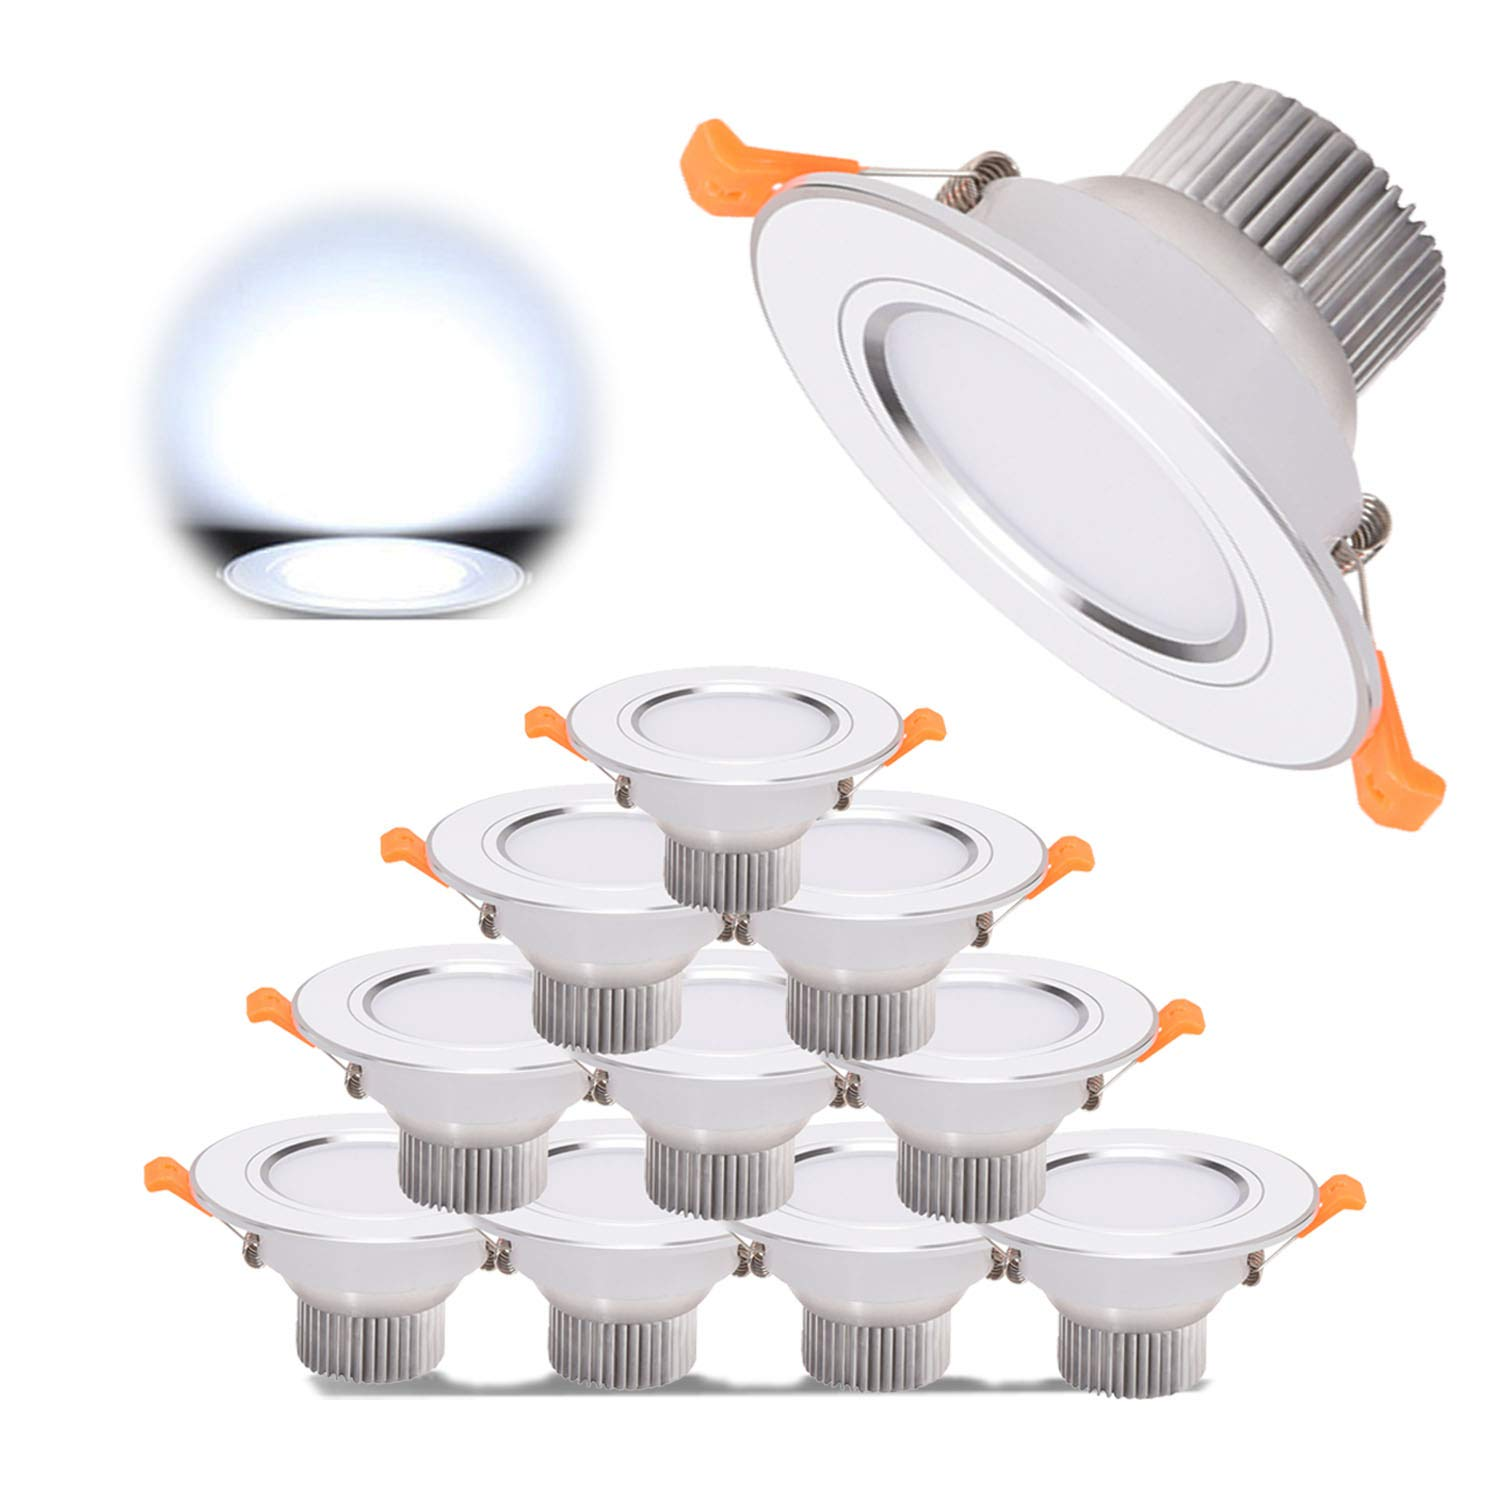 10 x LED Recessed Lighting, Ceiling Downlight High CRI Ra80 AC 85-265V 3W Cold White 6000K 300LM 30W Incandescent Equivalent Not Dimmable Spotlights for Bathroom Kitchen [Energy Class A+] Grt